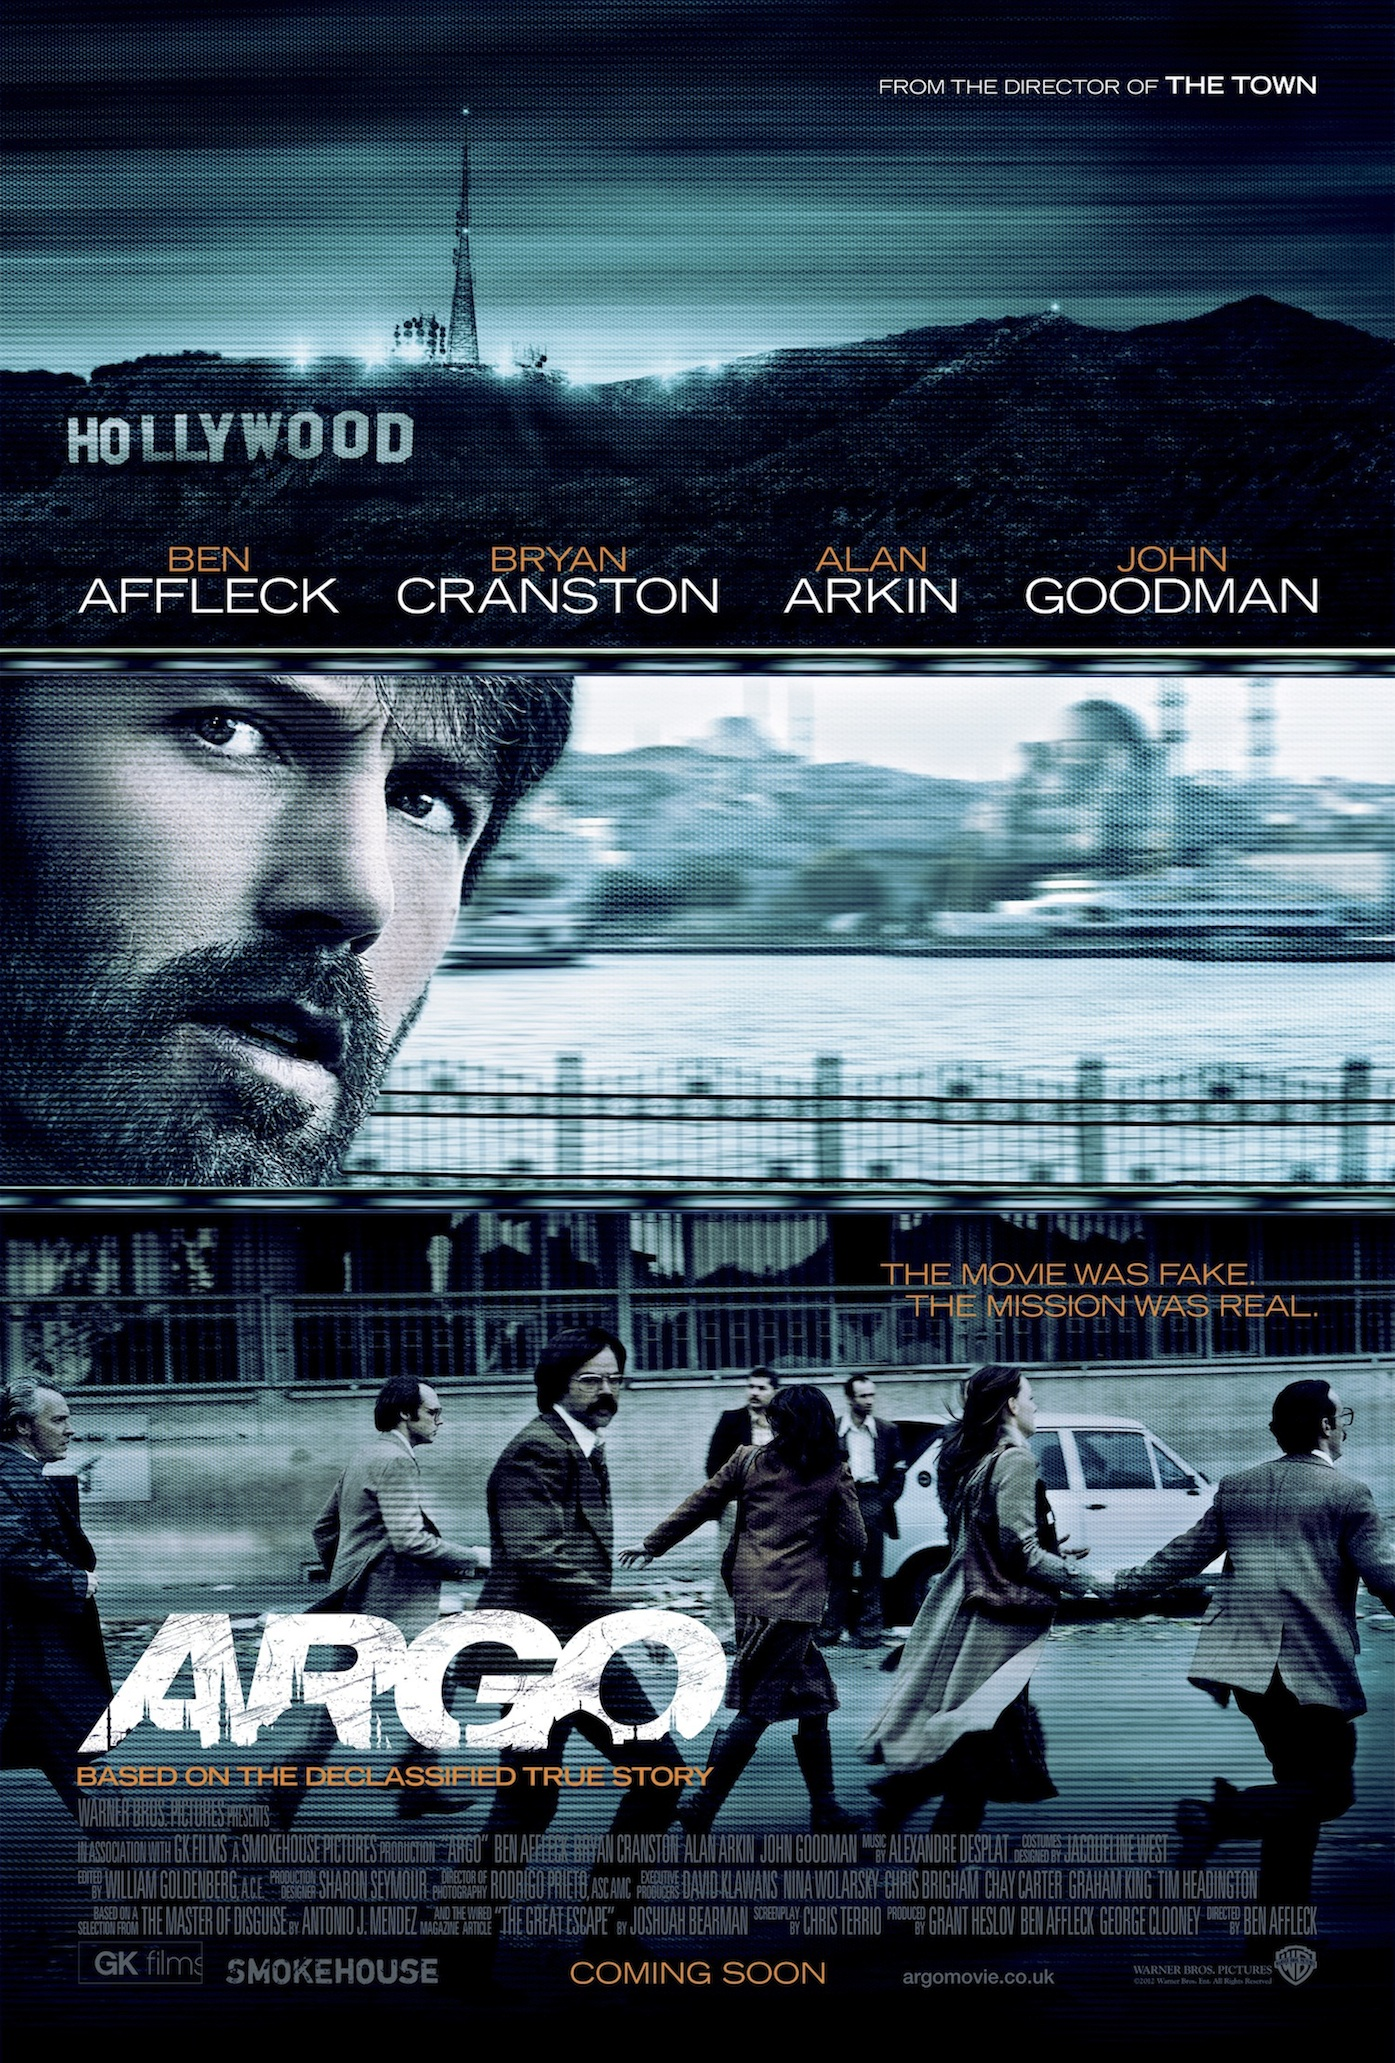 https://i0.wp.com/www.heyuguys.com/images/2012/09/Argo-UK-Poster.jpg